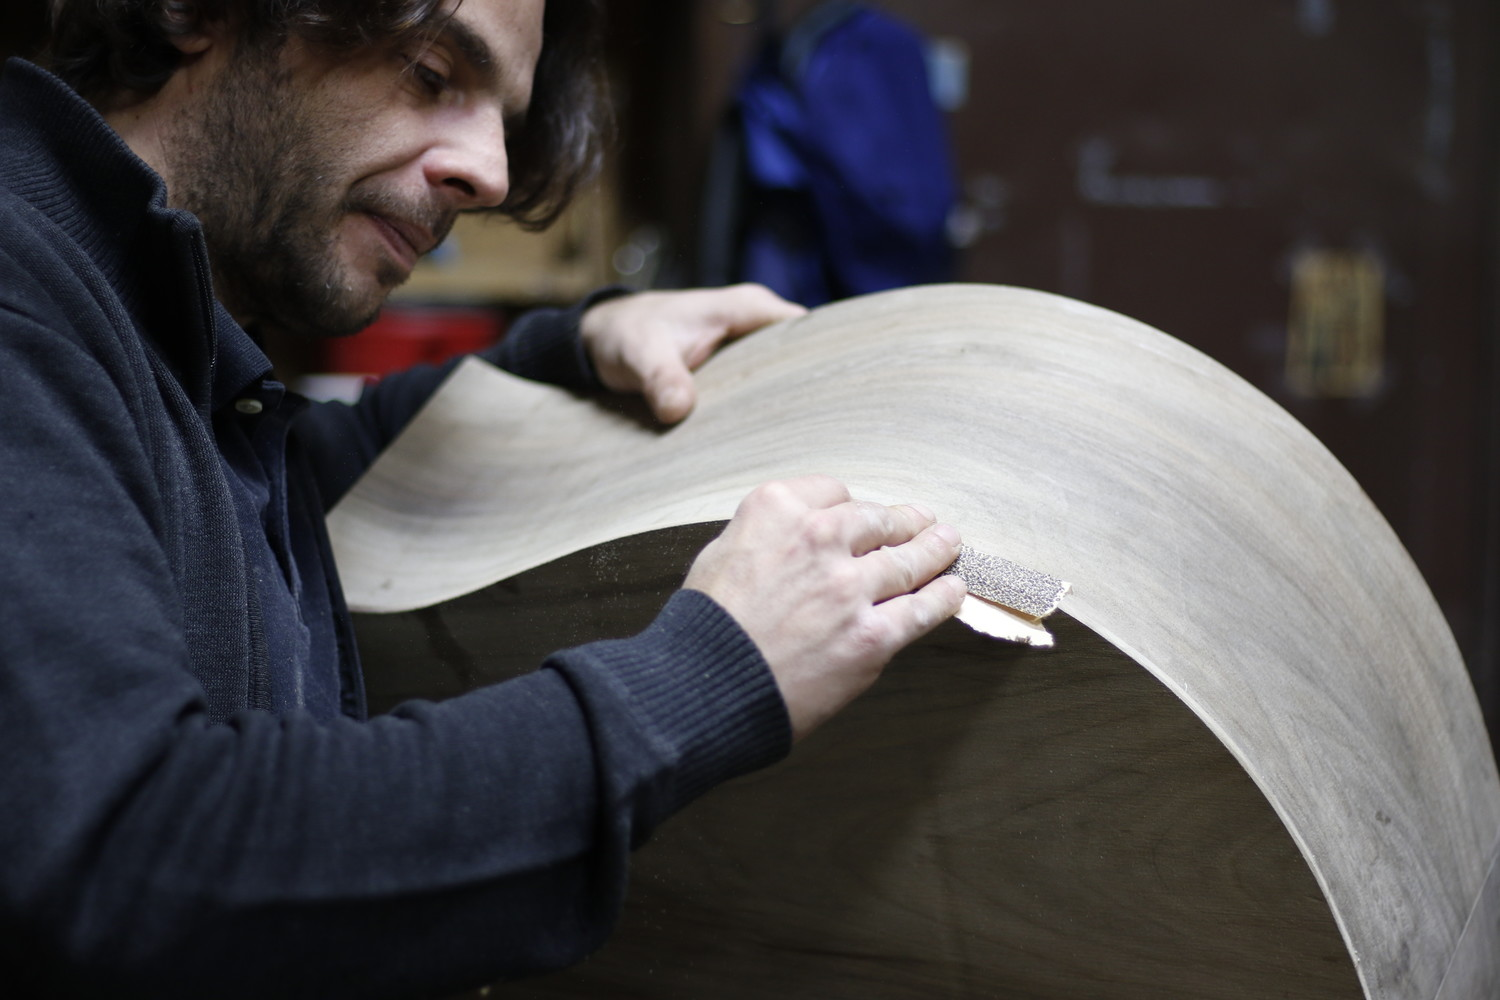 After assembling the body of a bass, Simone Diana, who is originally from Italy, sanded the willow bark to smooth out the edges.